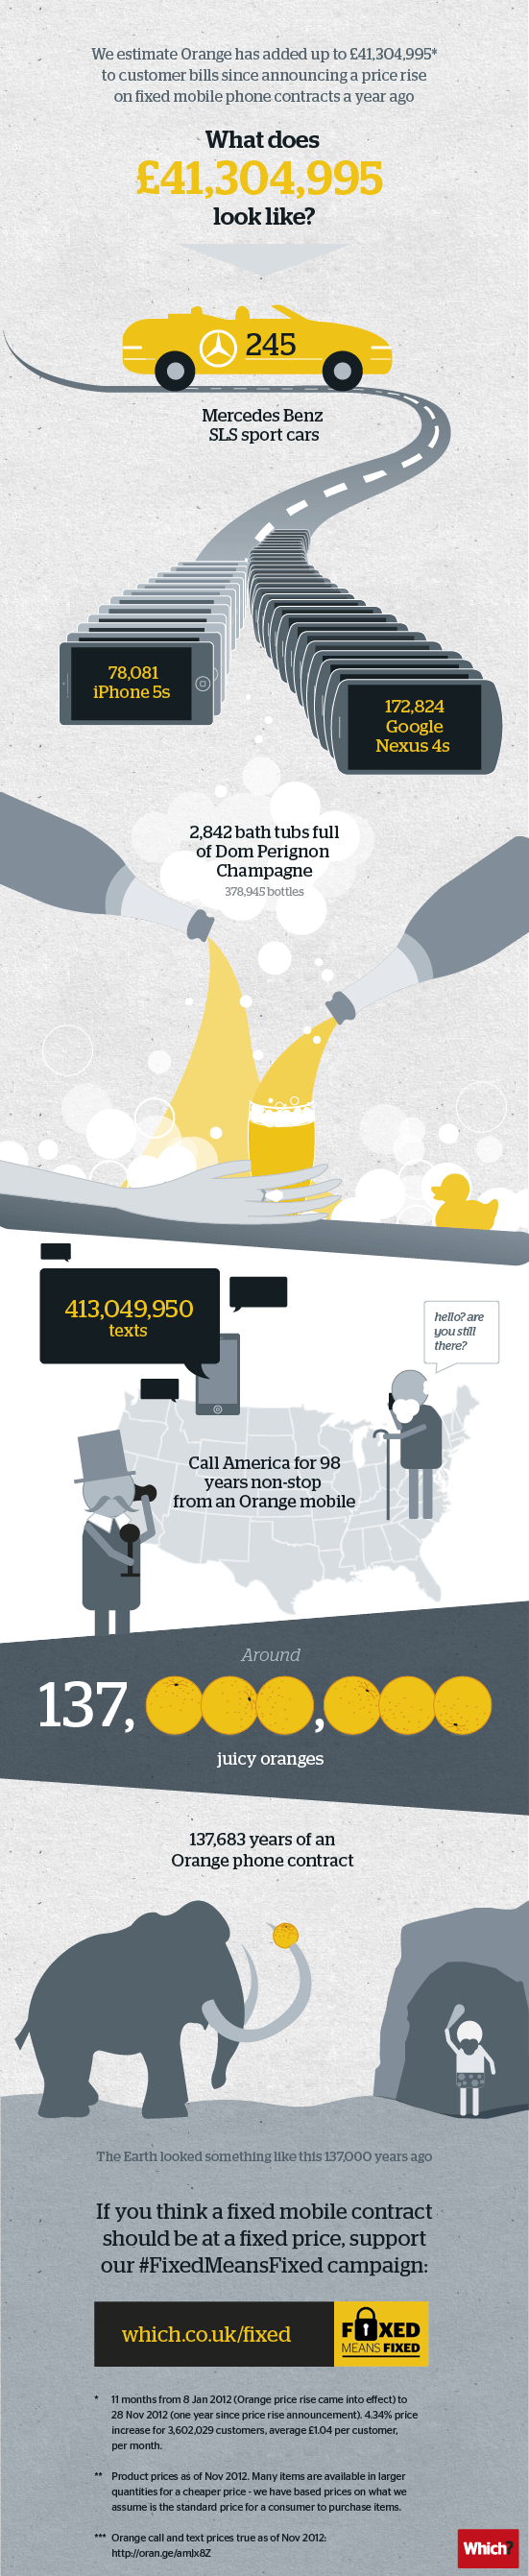 Orange mobile phone price rise - £41m added to customer bills